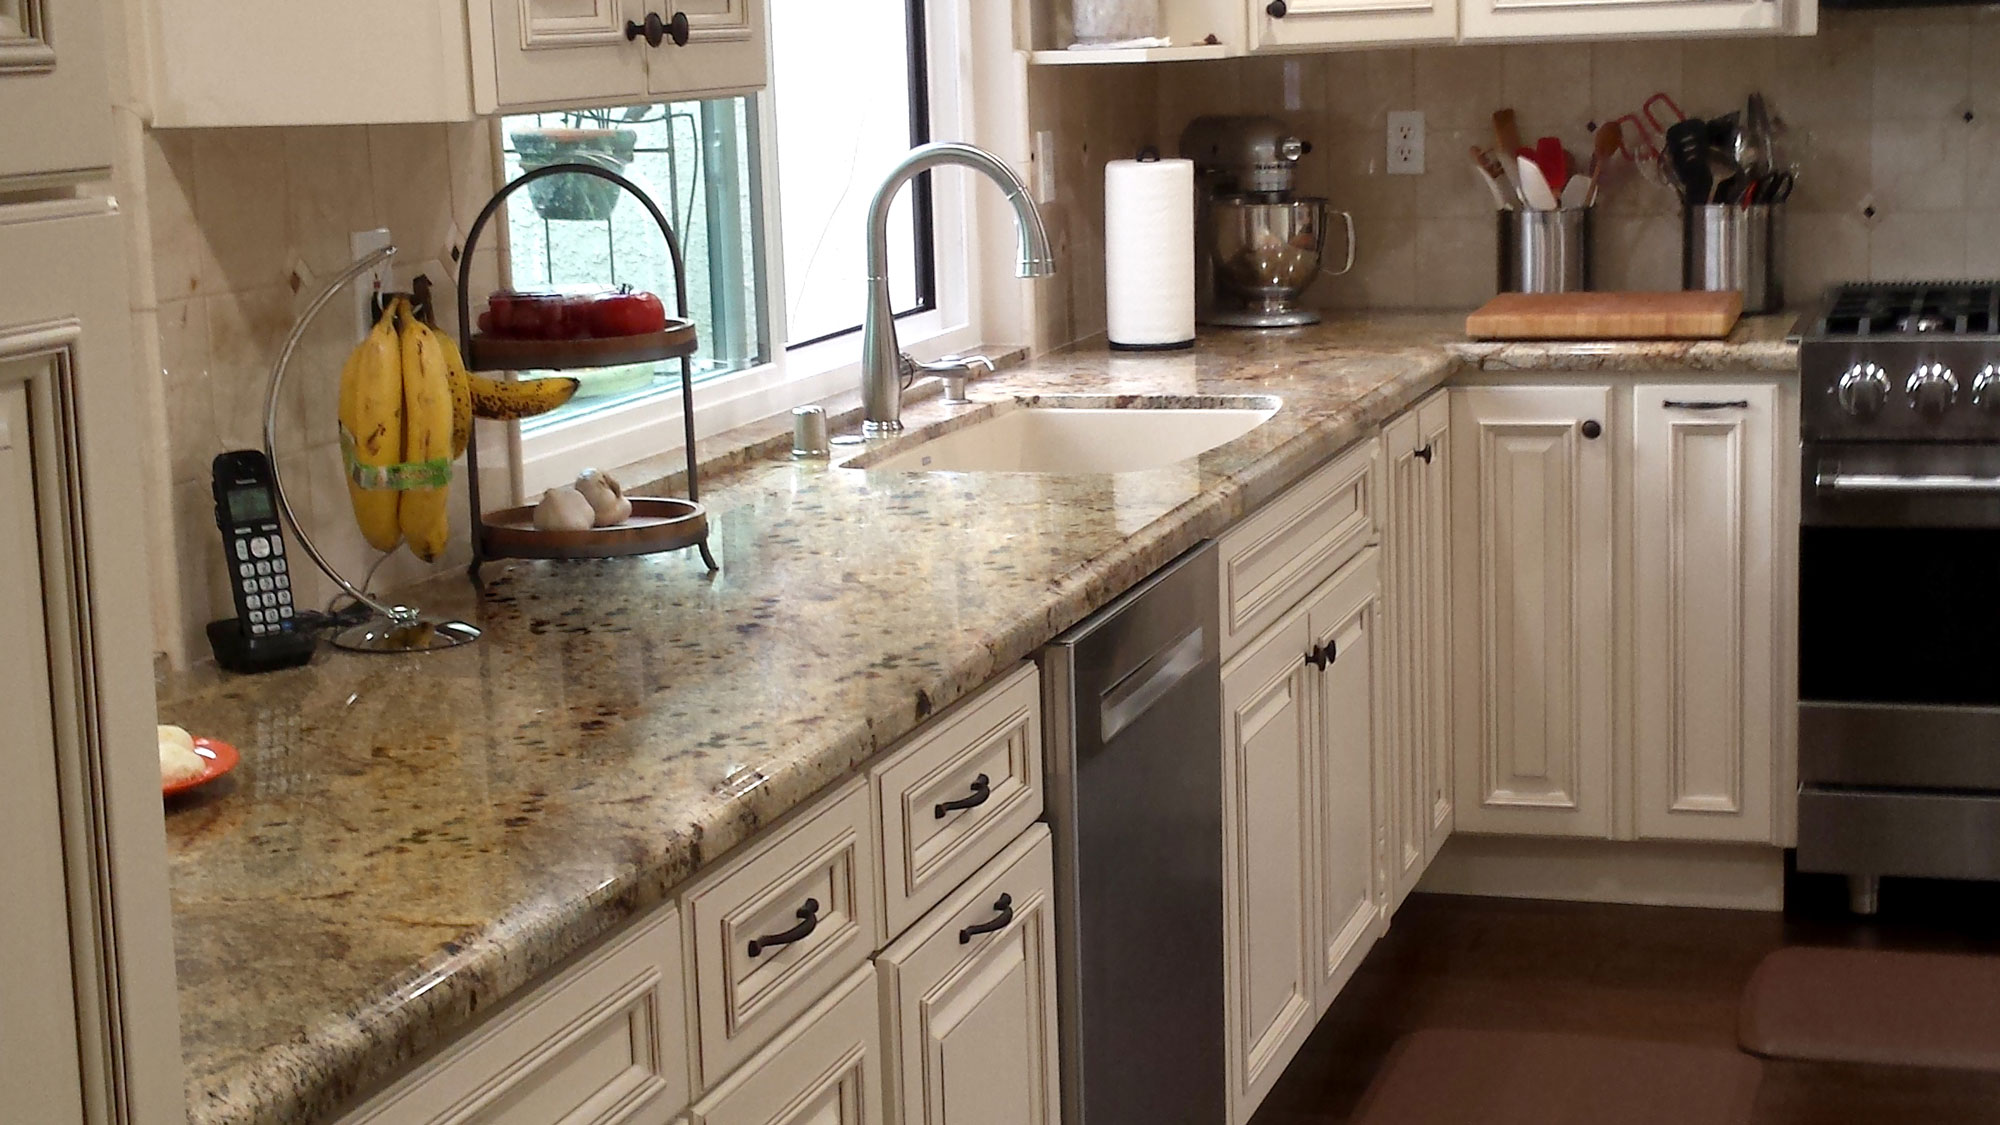 kitchen-remodel-new-cabinets-flooring-countertop-fixtures-sink